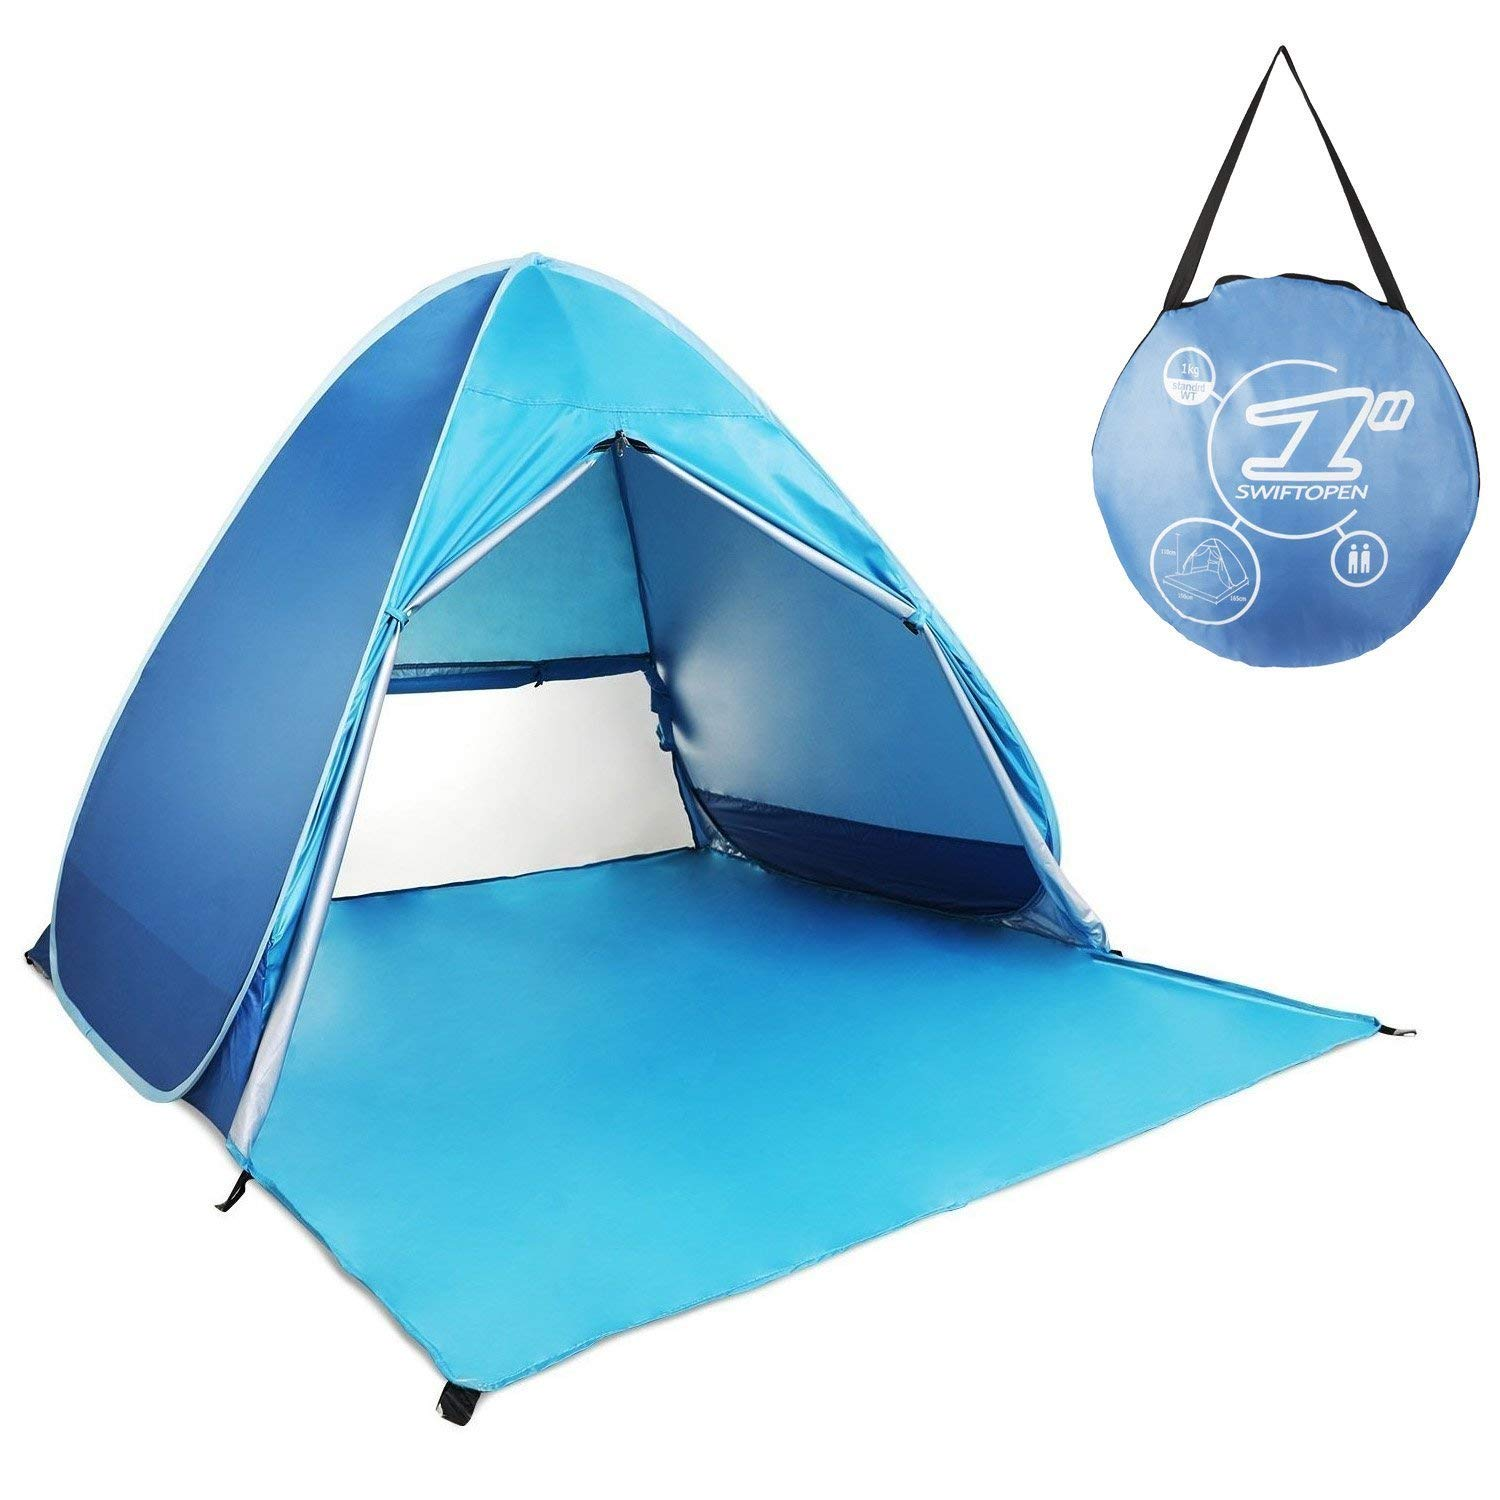 HIEMAO Pop Up Tent, Beach Tent Sun Shelter Instant Sun Shade Portable UV Tent Baby Sun Cabana with Zipper Door for Garden/Beach Times (for 2-3 Person) - Azure by HIEMAO